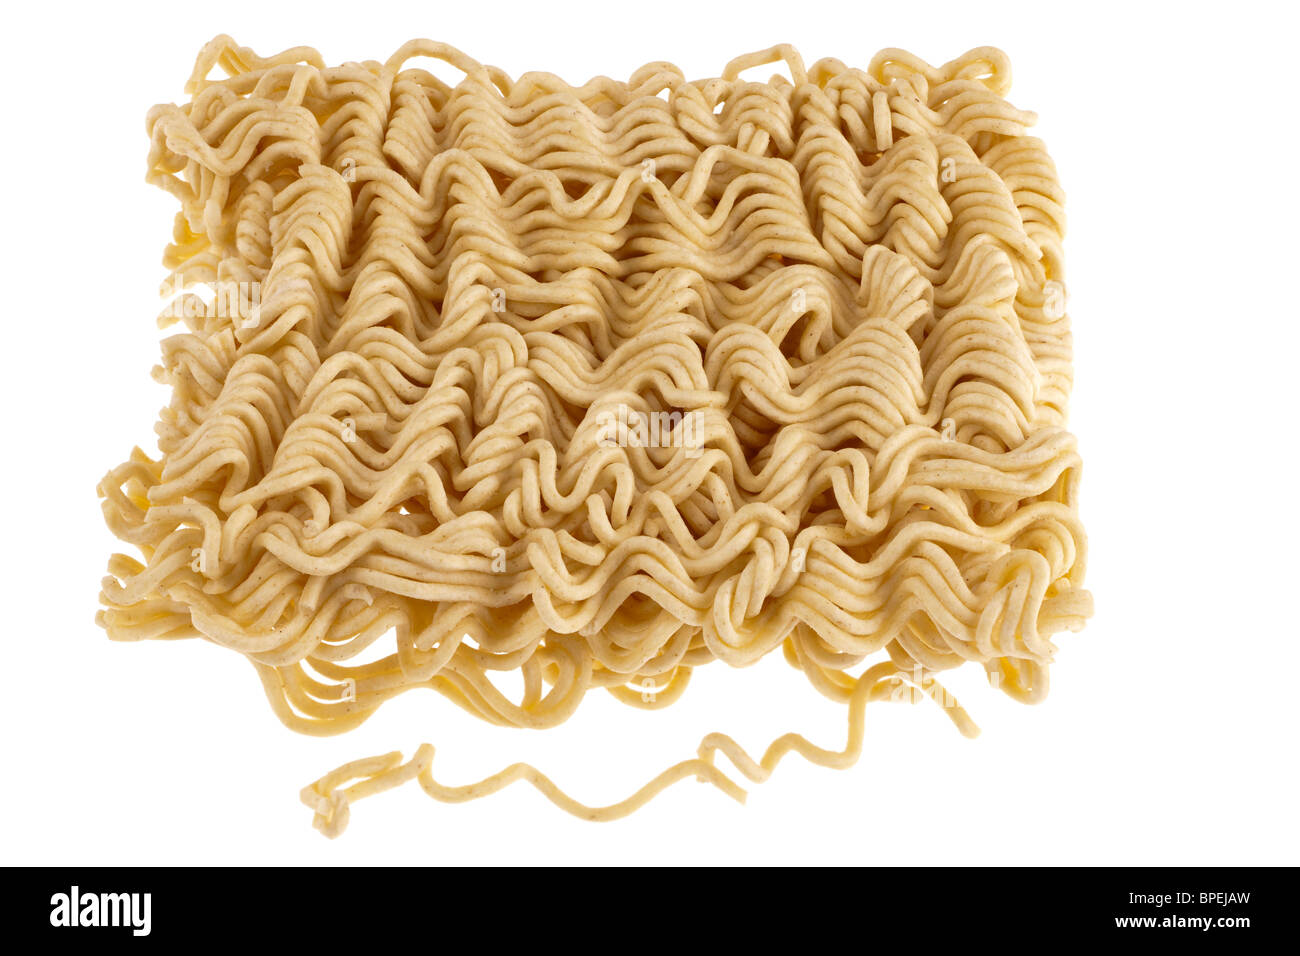 Pile of dried instant noodles - Stock Image